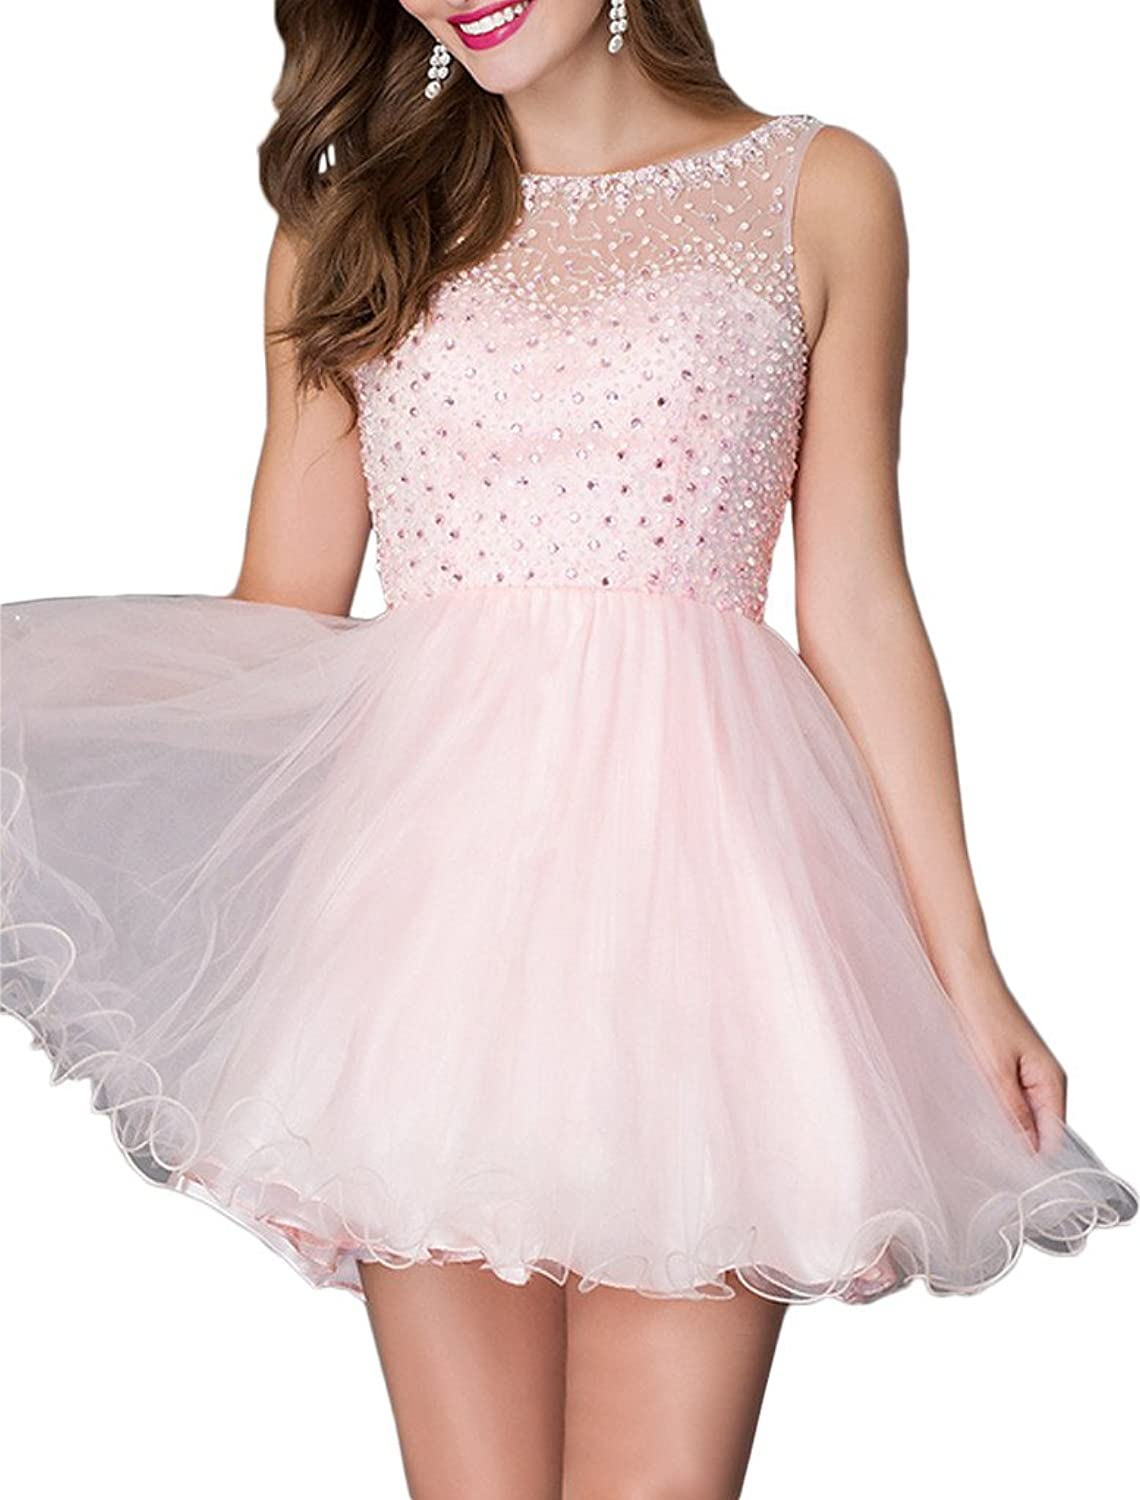 Avril Dress Pretty Sleeveless Beaded Backless Lace Prom Homecoming Dress Mini